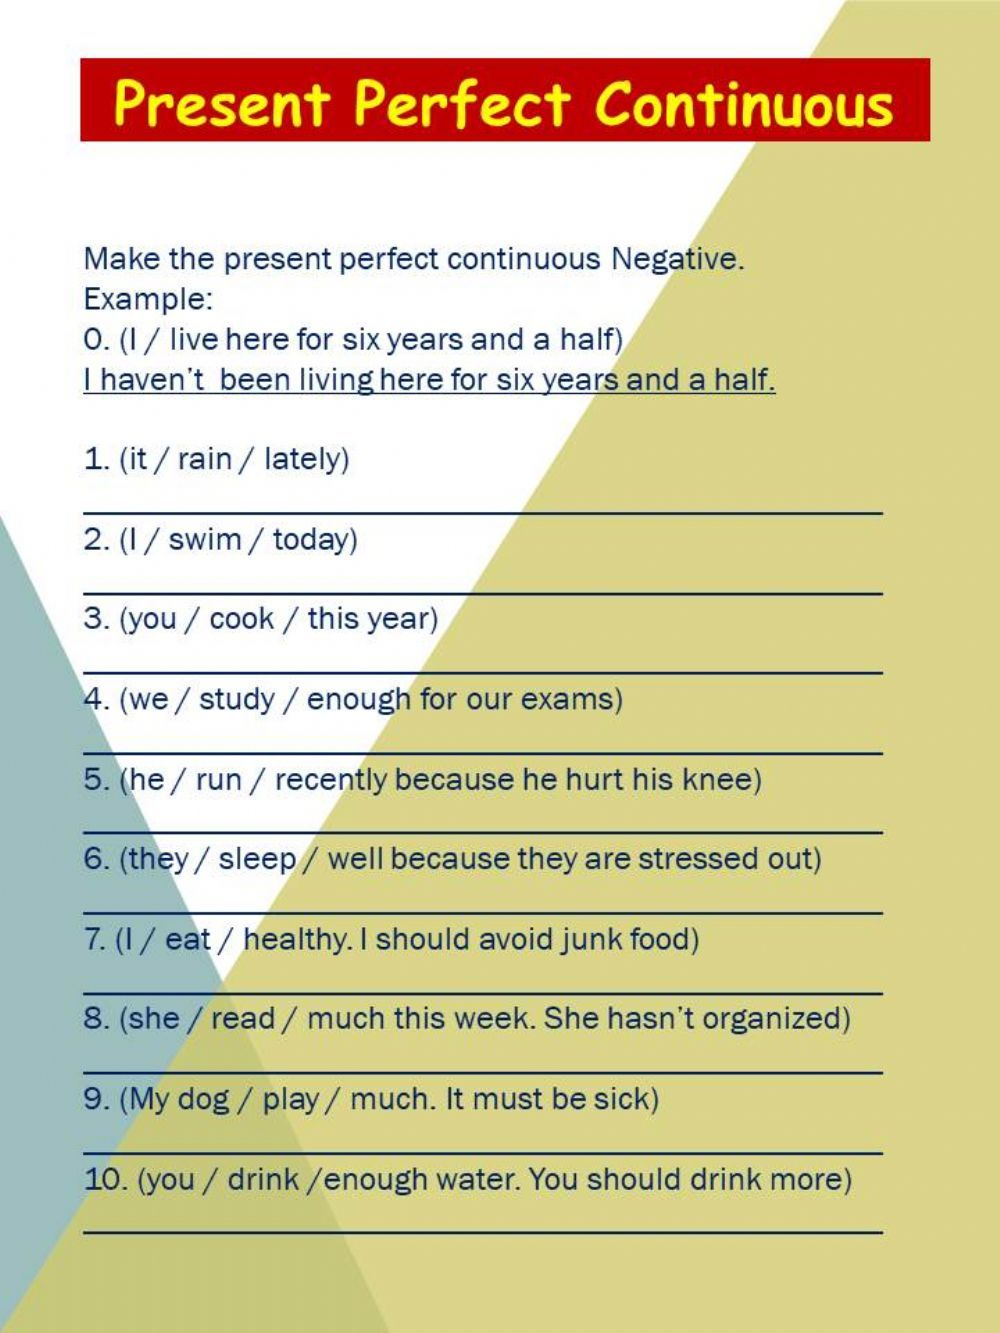 Present perfect continuous interactive and downloadable